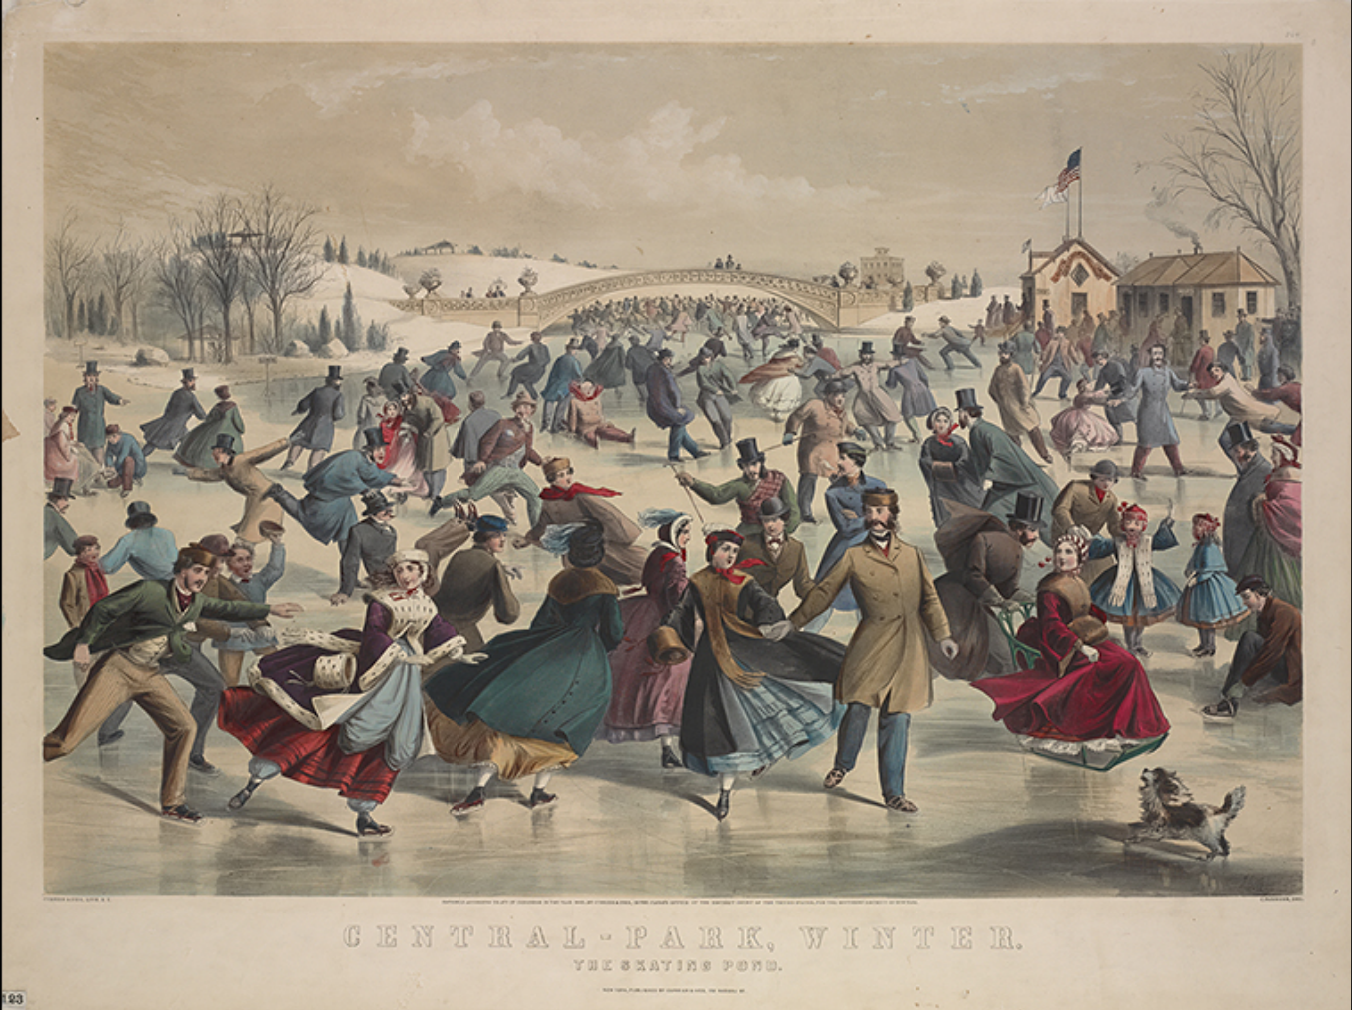 1864-central-park-winter-the-skating-pond-currier-ives-1864-chromolithographic-print-nypl